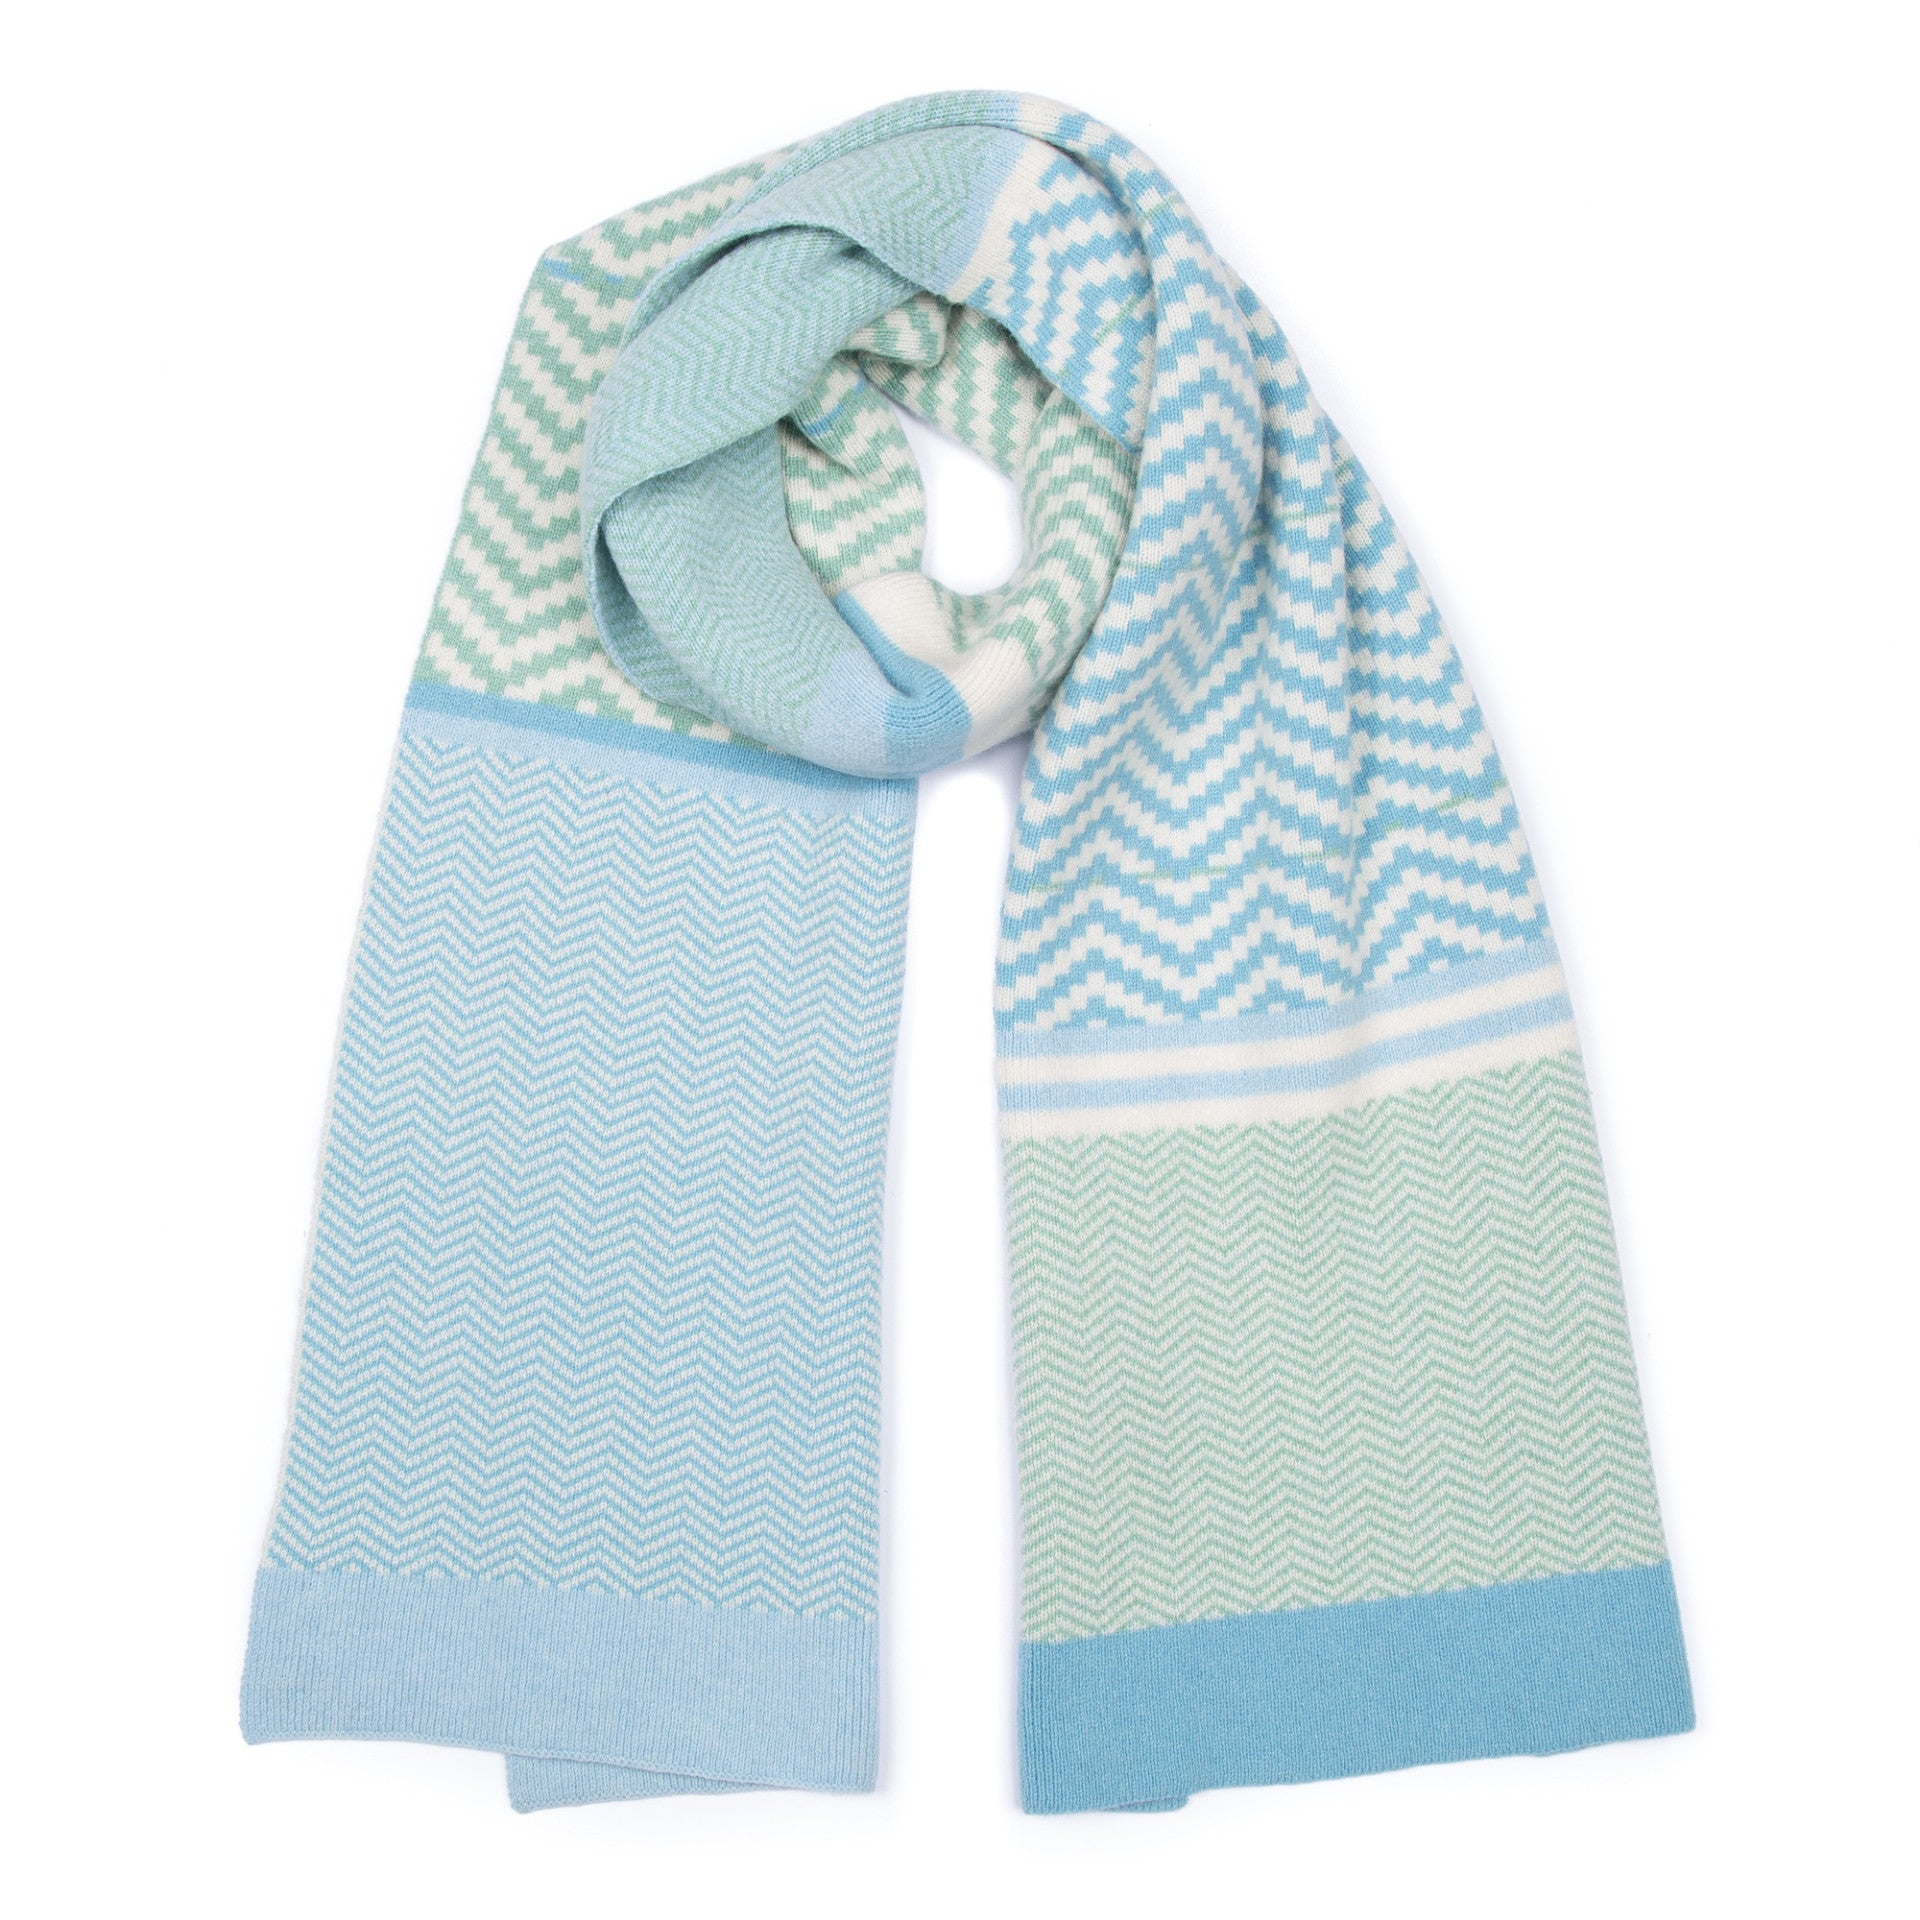 CHEVRON BLANKET SCARF MINT MIX - GREEN THOMAS